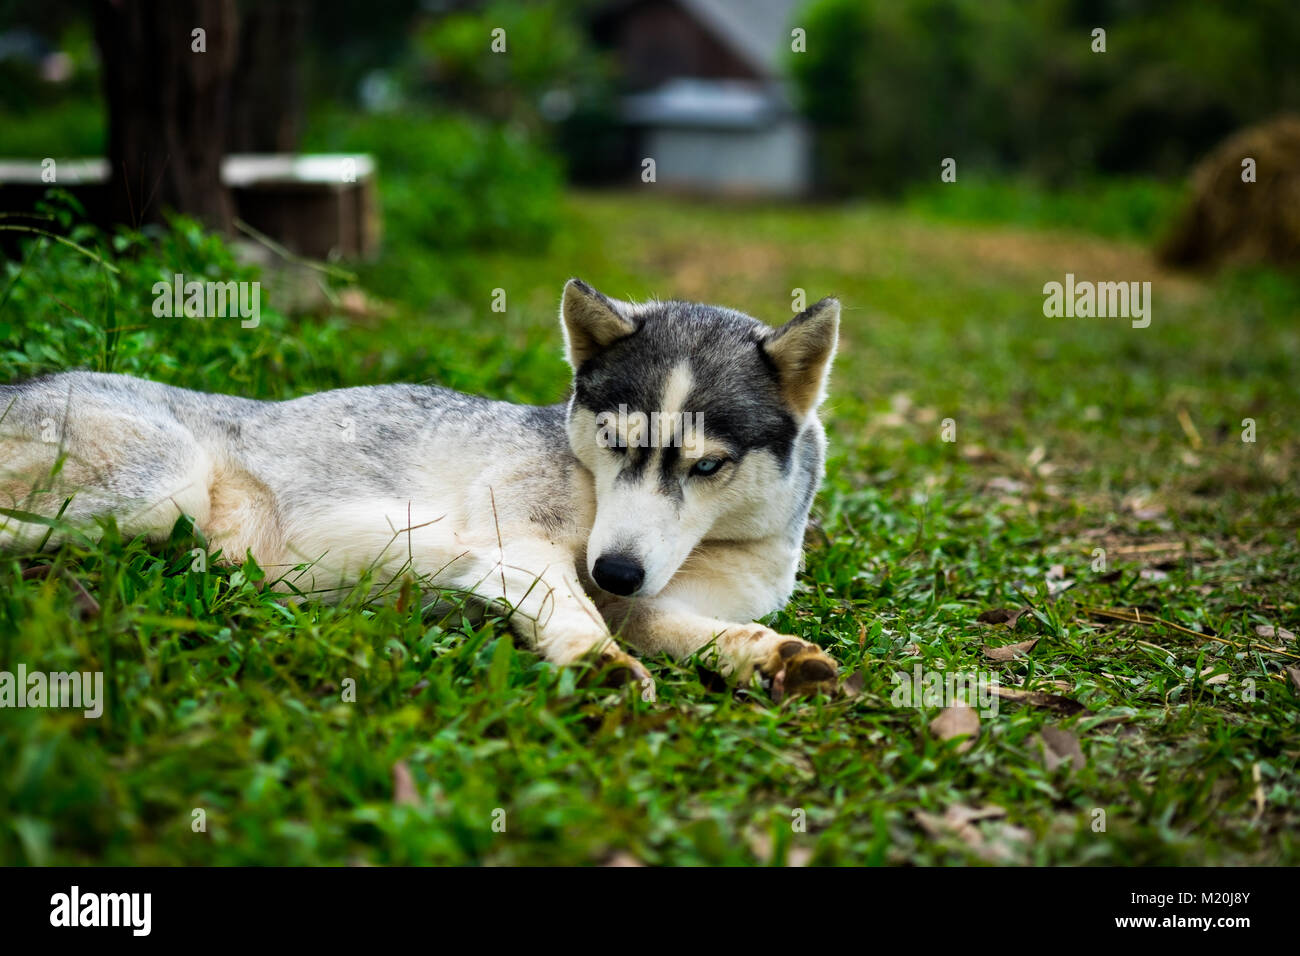 A little siberian husky sitting and take a look something with interest in the midst of nature, selective focus. Stock Photo